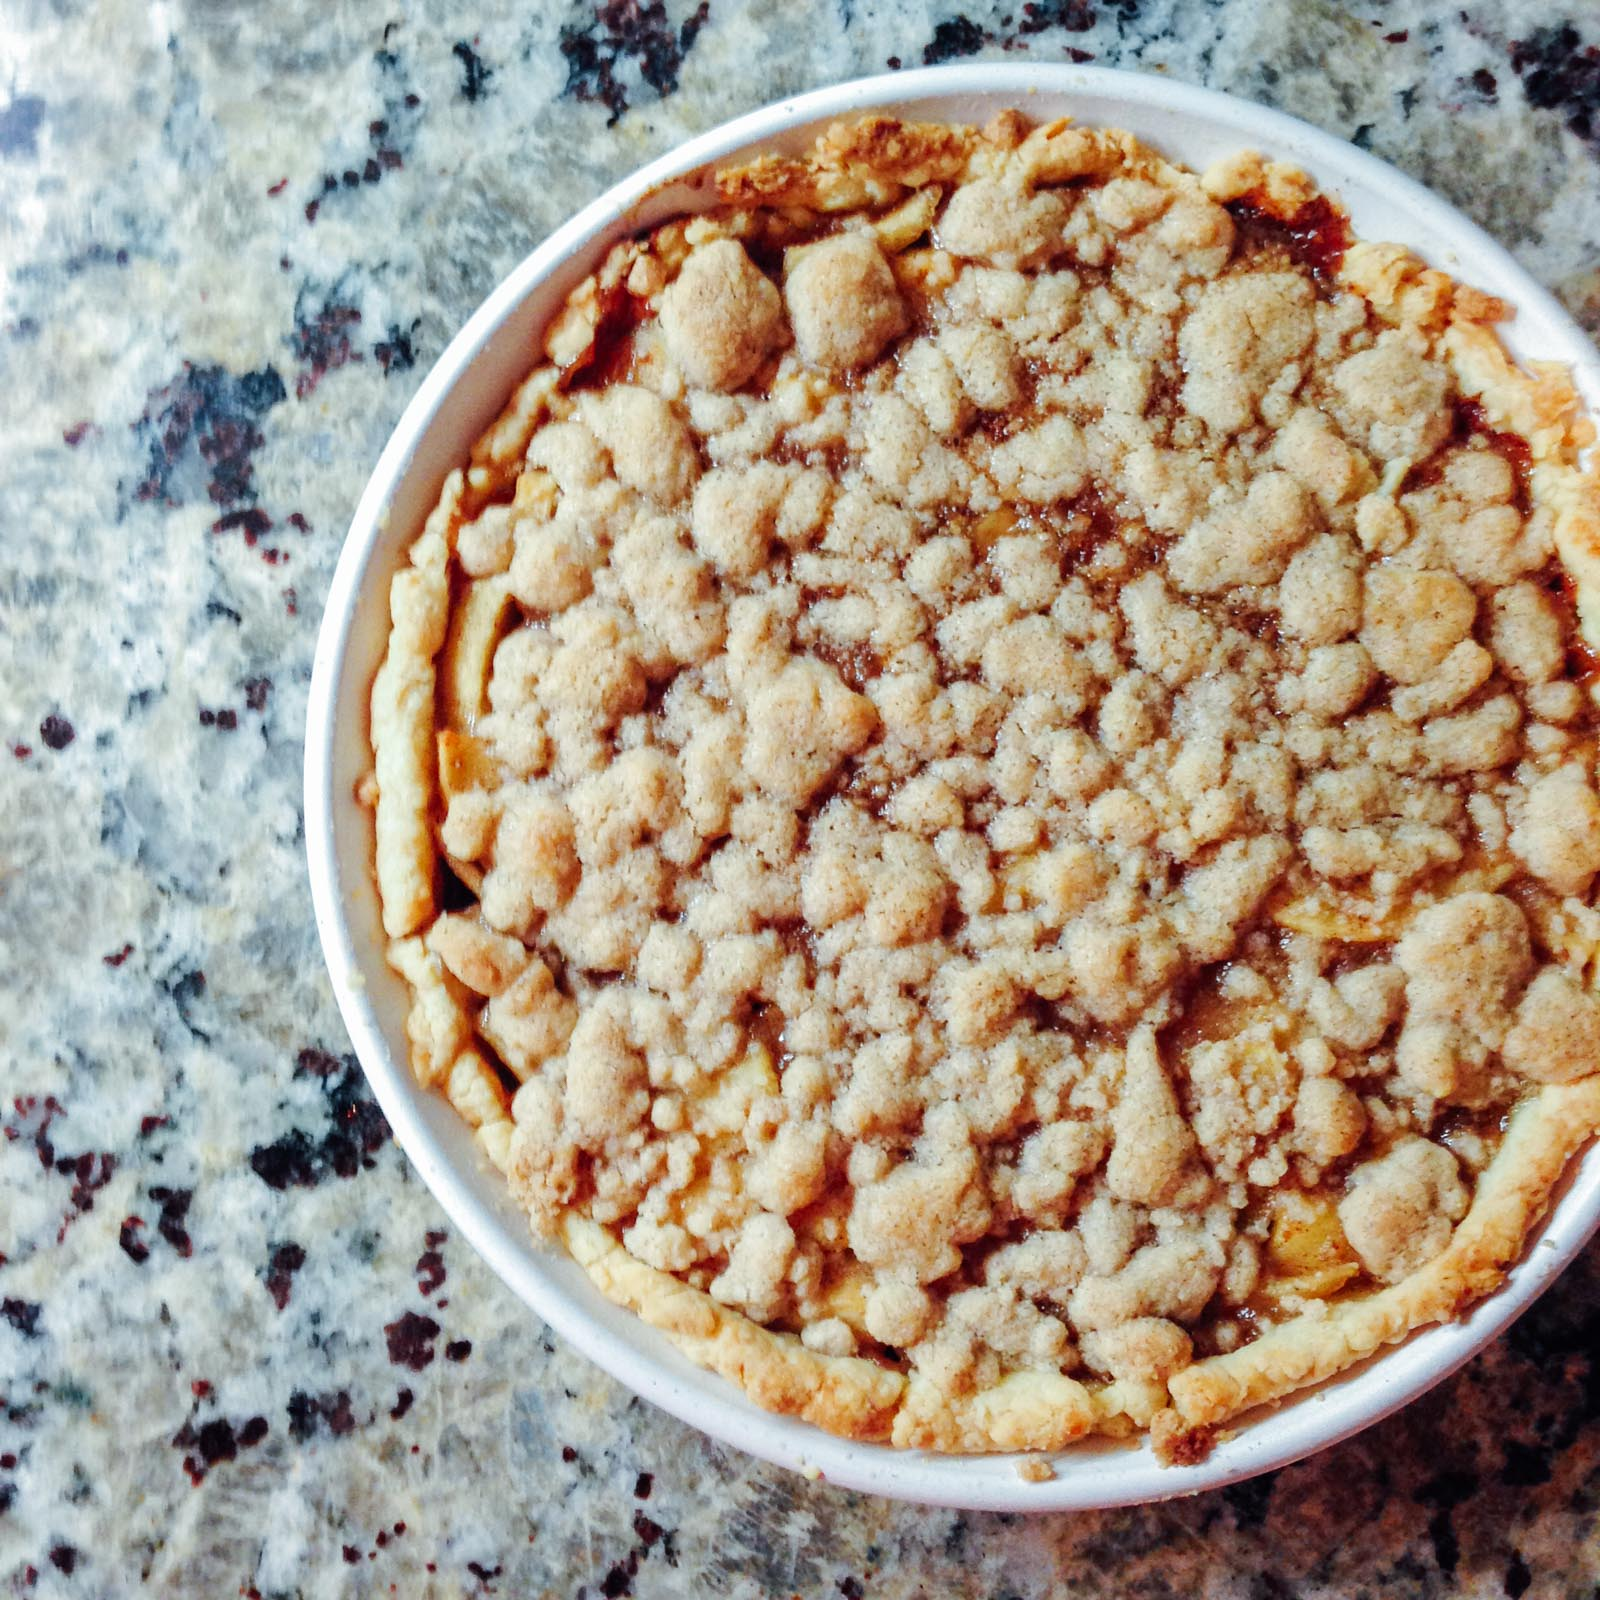 Sad gf pie attempt with crumble topping